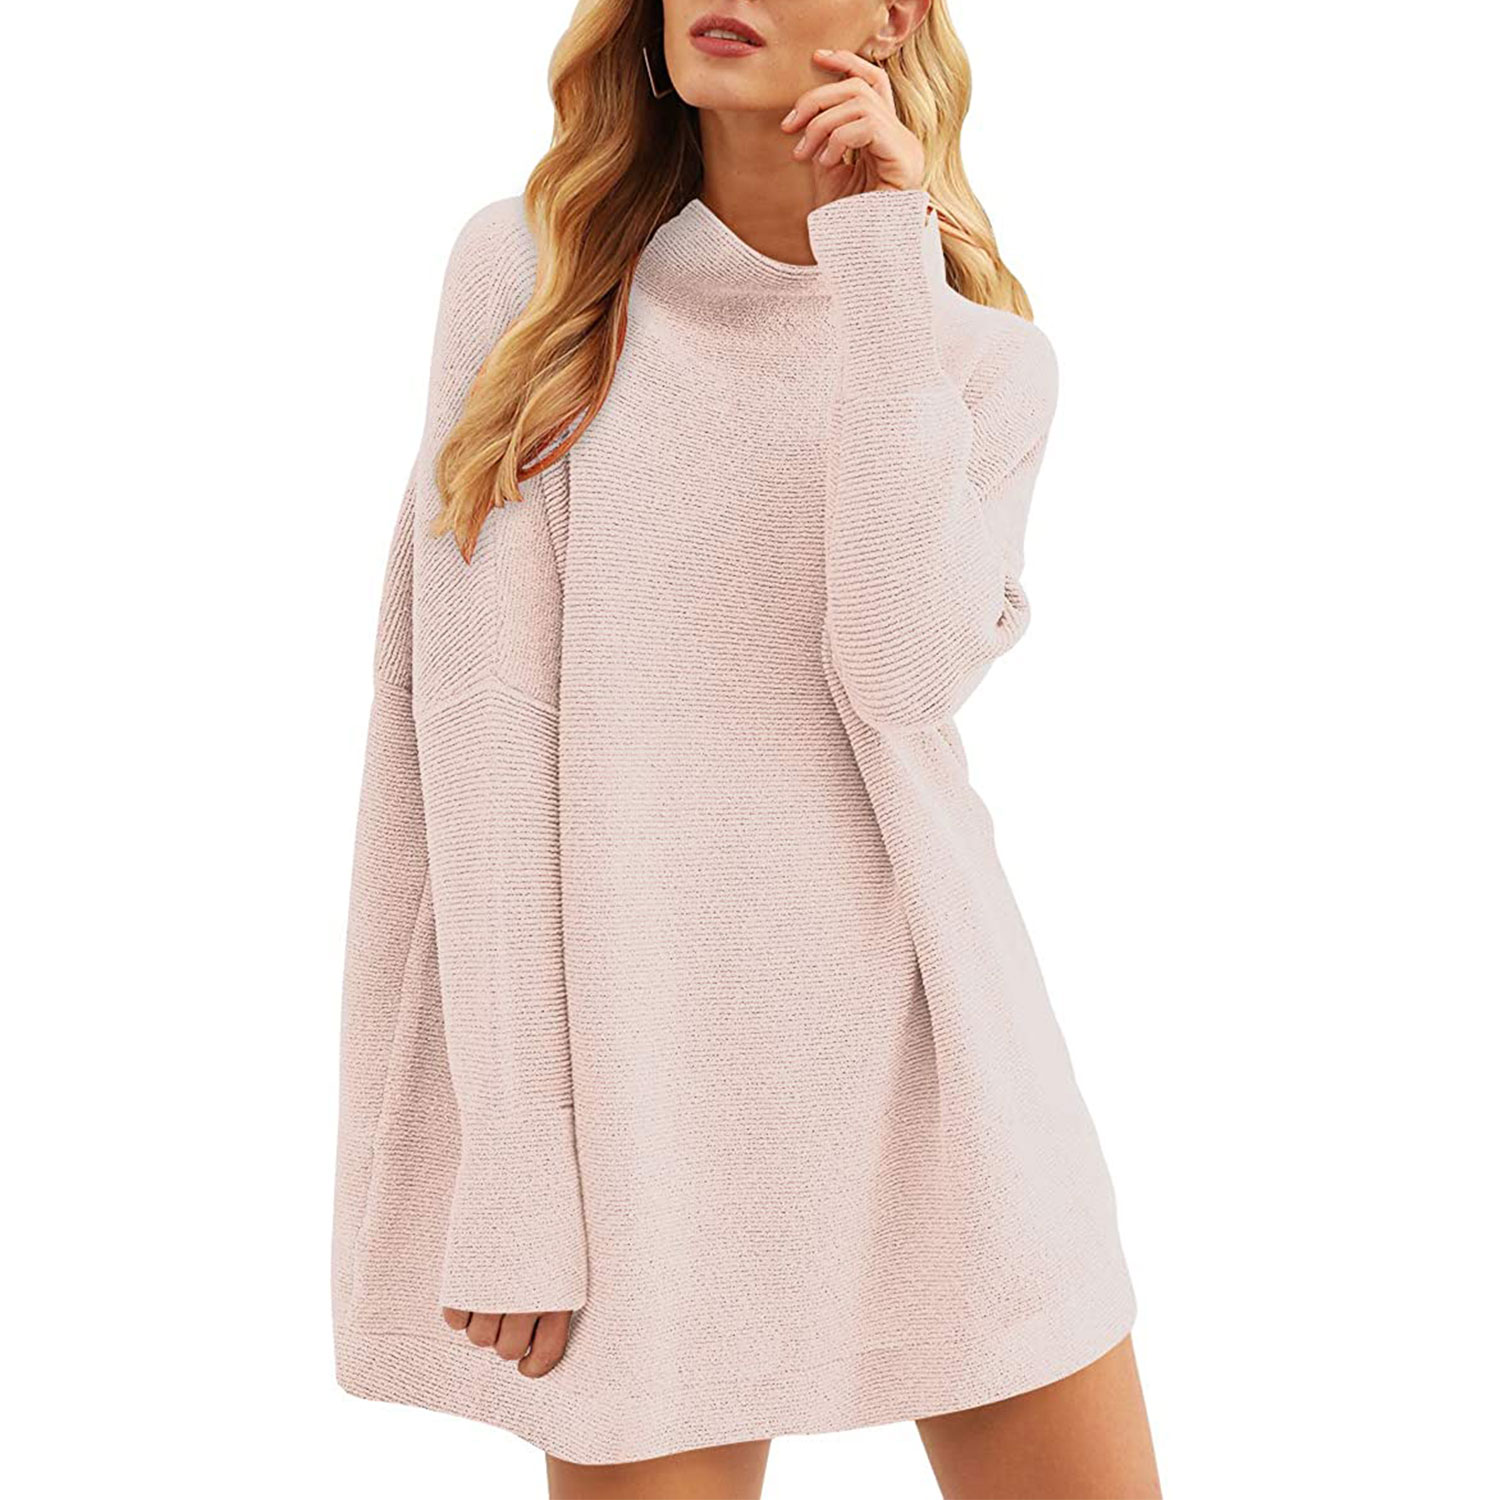 women's casual turtleneck batwing sleeve slouchy oversized ribbed knit tunic sweaters, pink